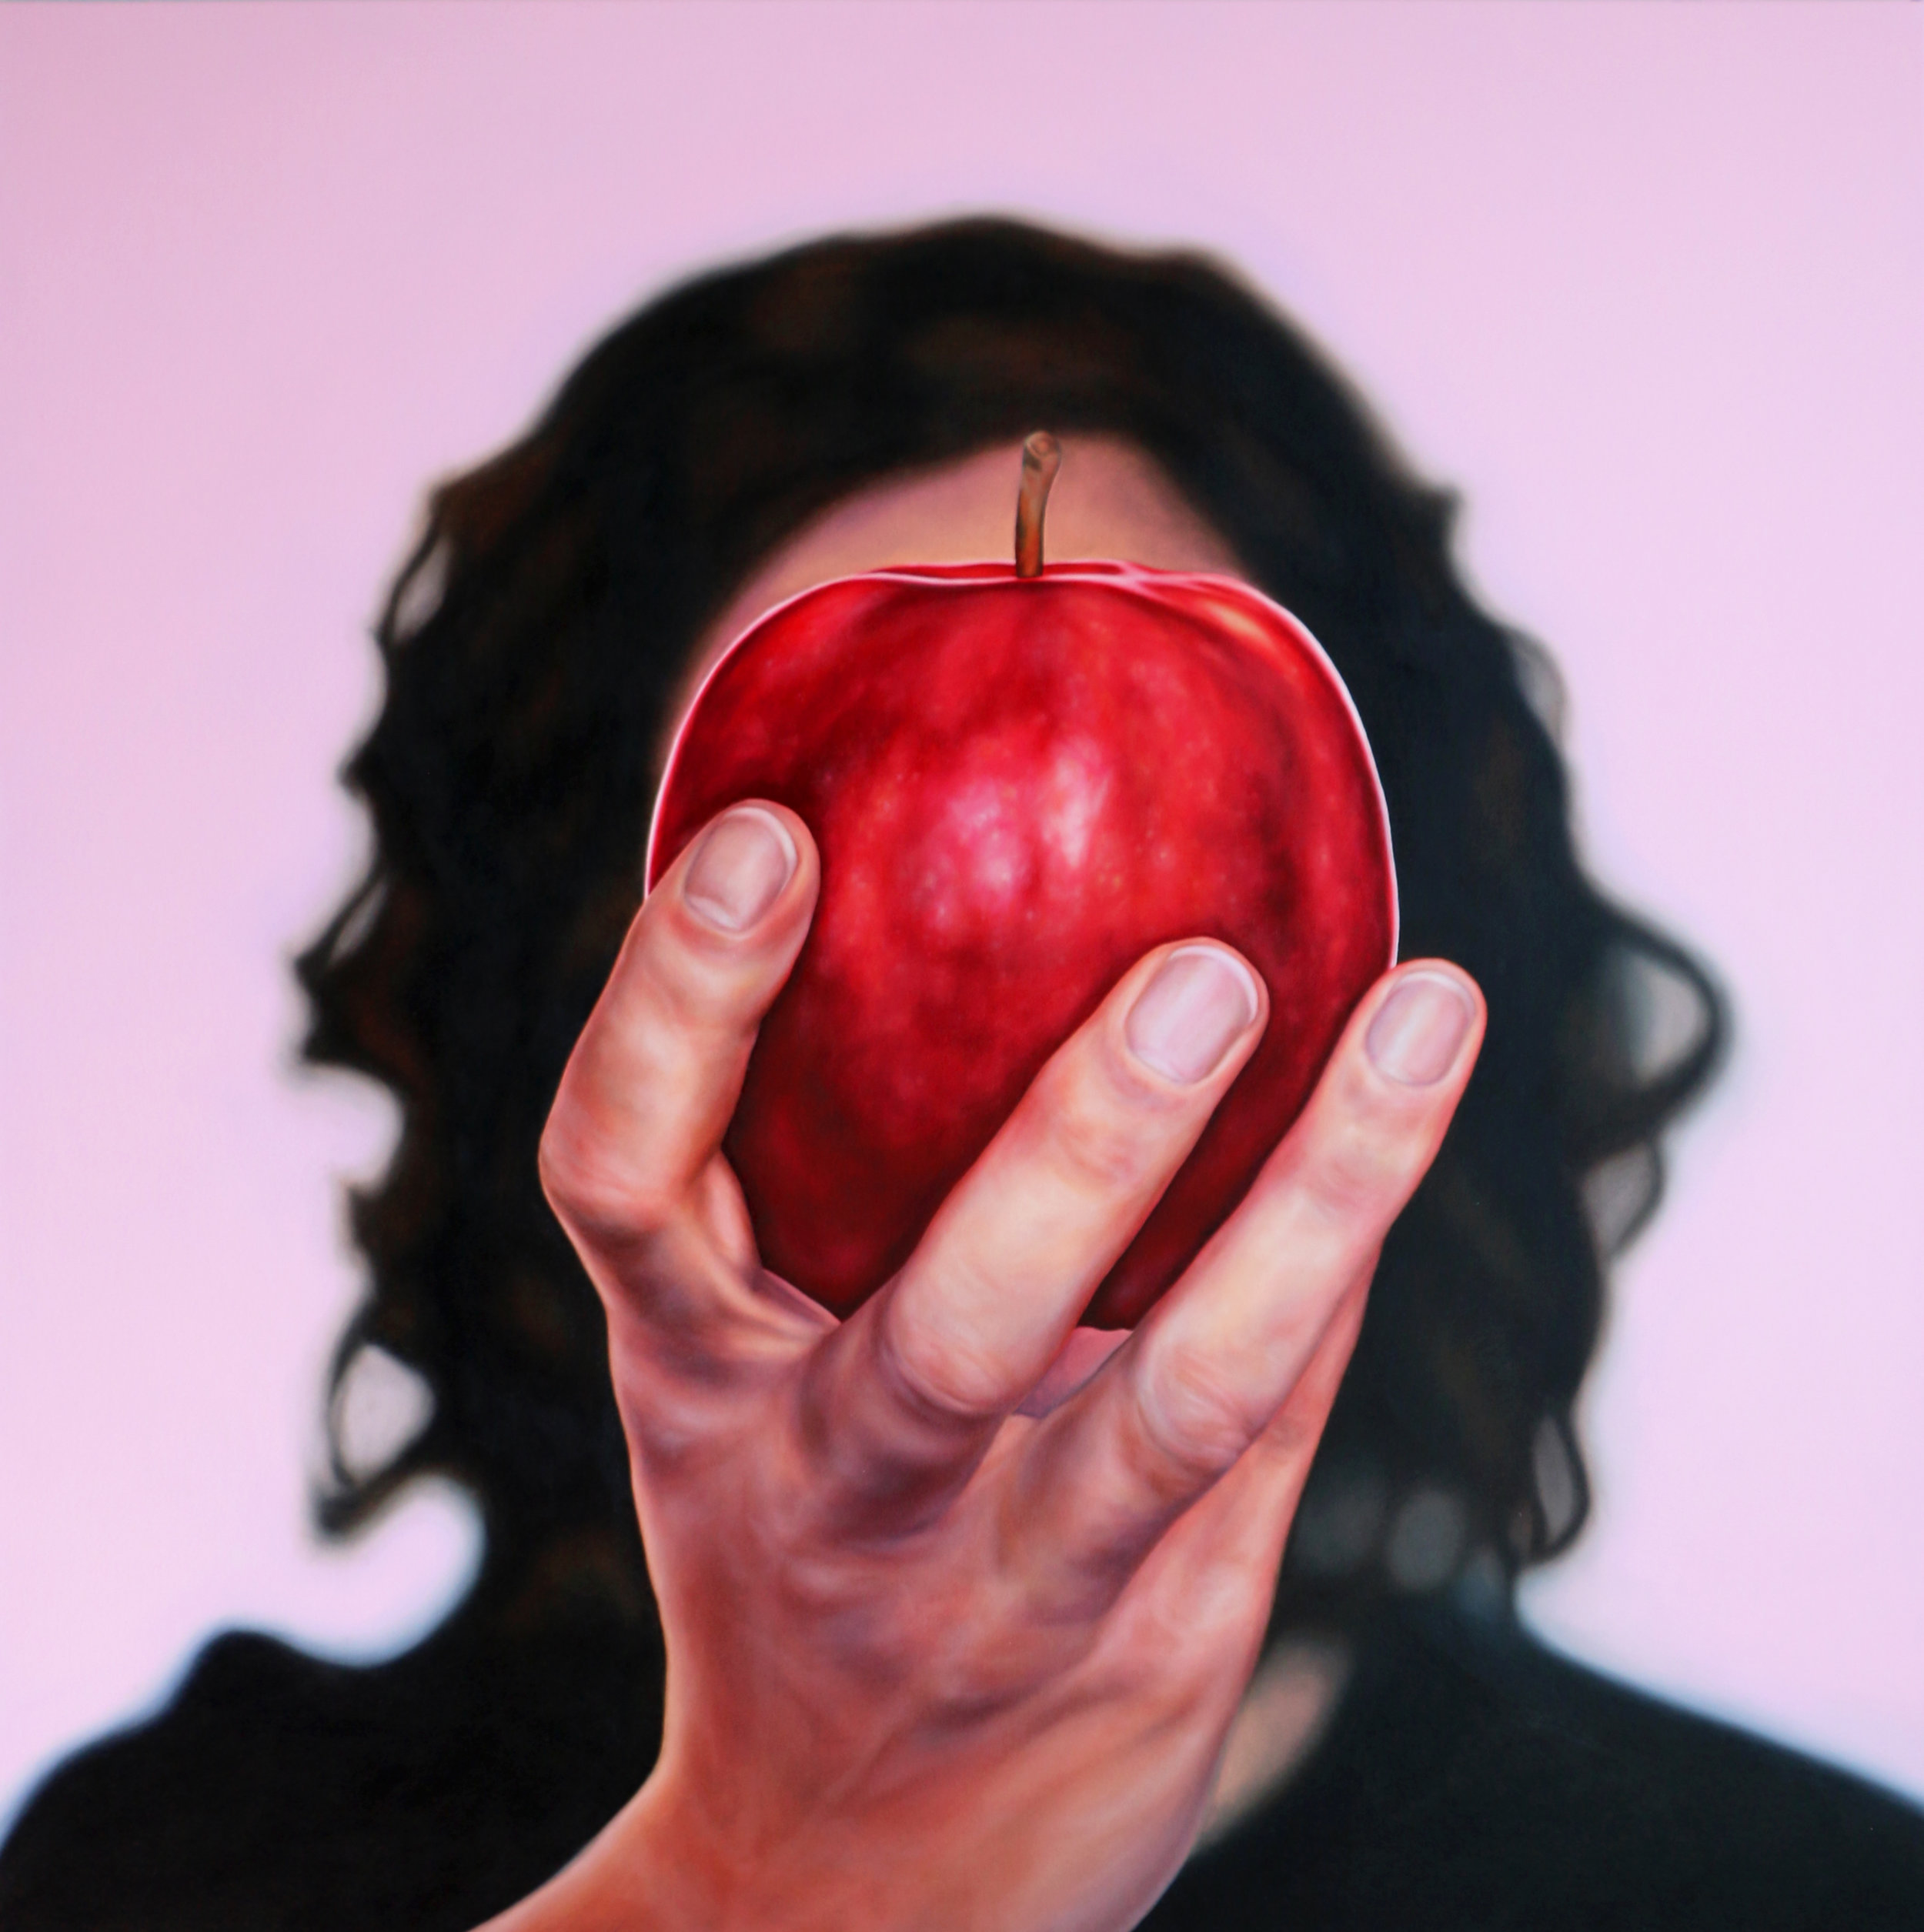 I'll Be the Apple of Your Eye: Homage to Magritte